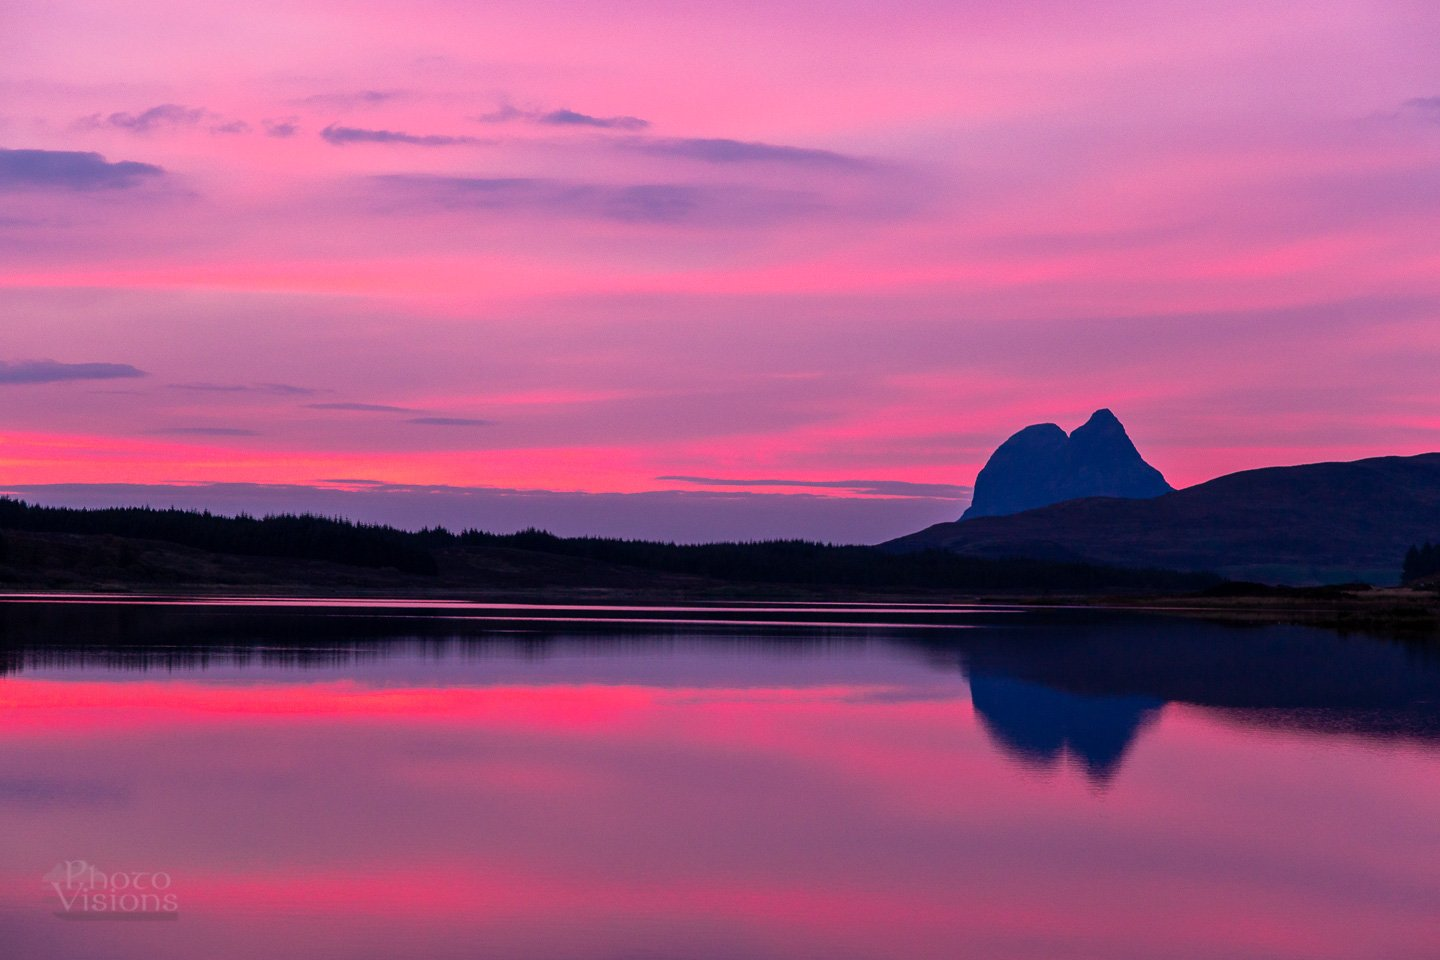 scotland,highlands,stac pollaidh,sunset,pink,dark,moody,landscape,reflections,mountain,sky,, Szatewicz Adrian